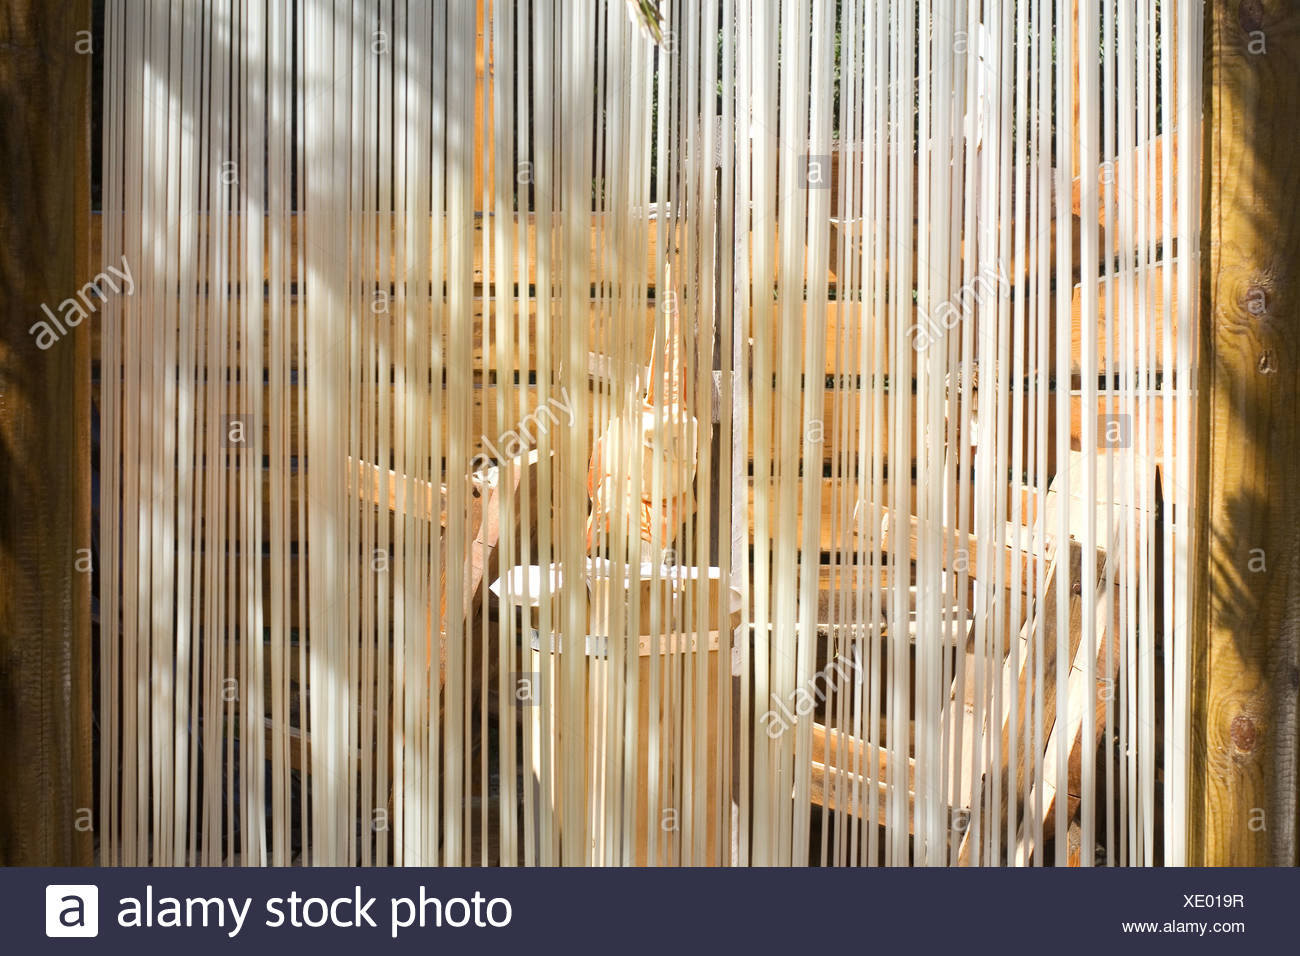 curtain - Stock Image